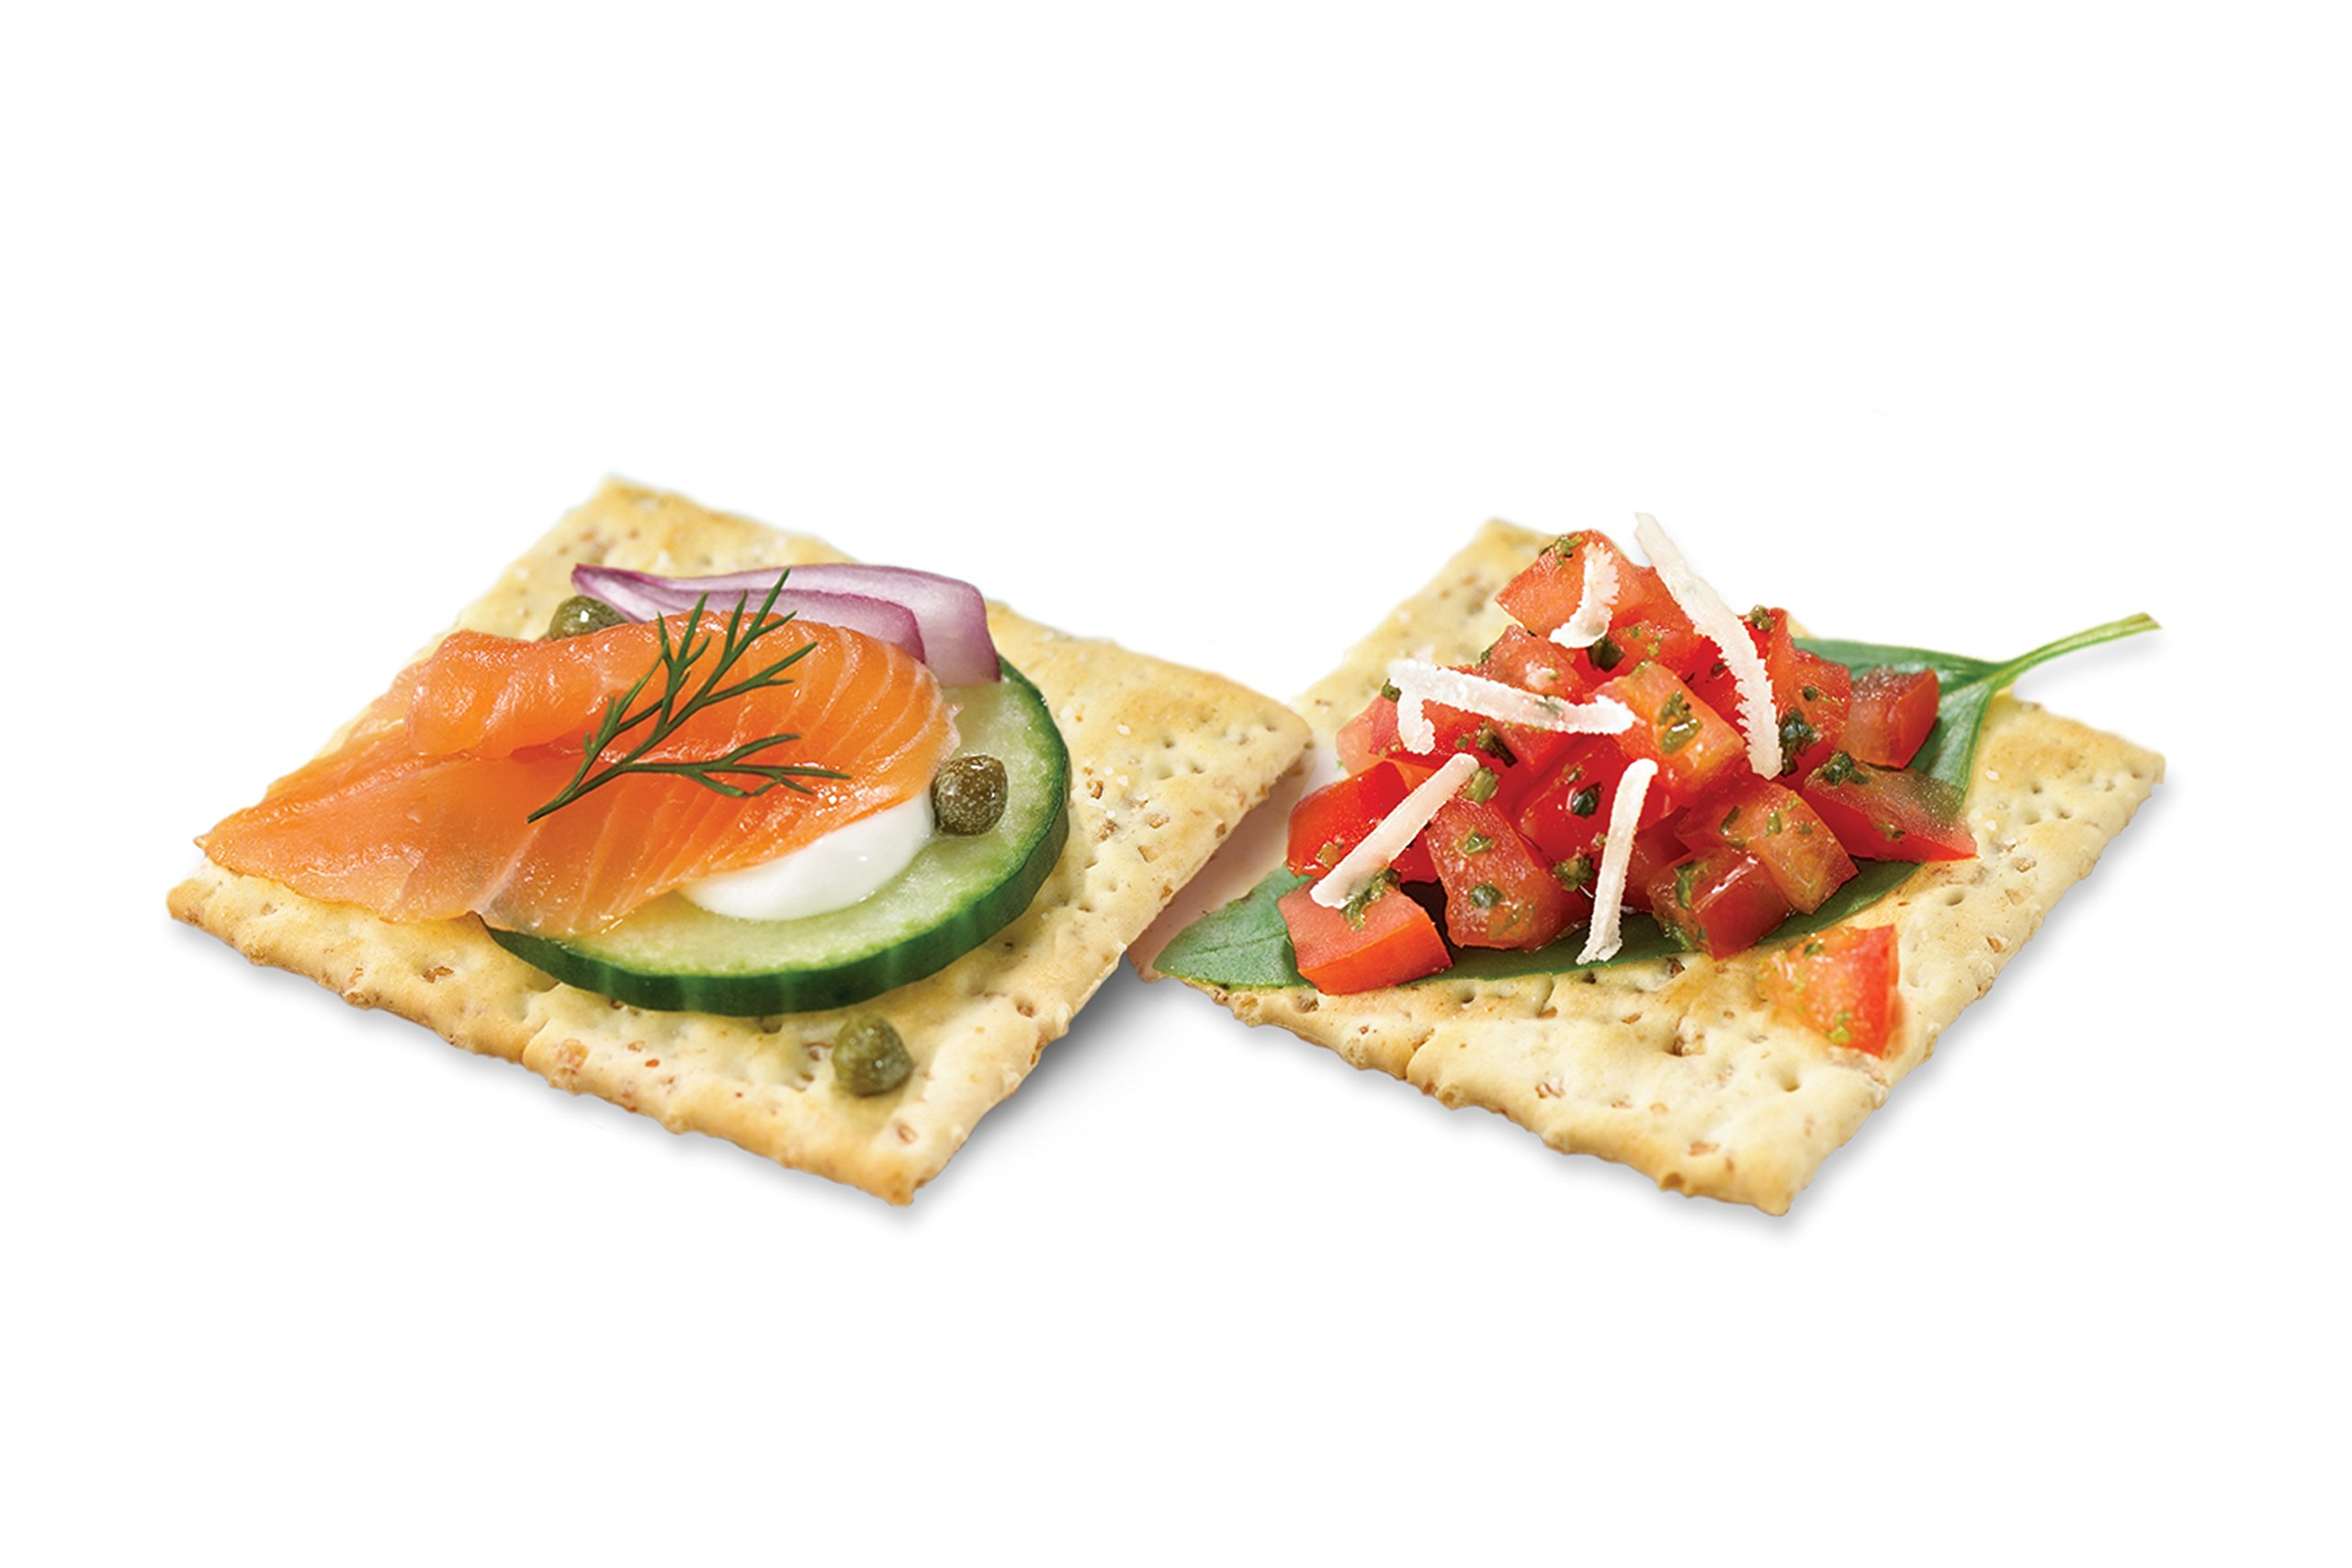 Red Oval Farms Stoned Wheat Thin Crackers, 10.6 Ounce (Pack of 12) by Wheat Thins (Image #4)